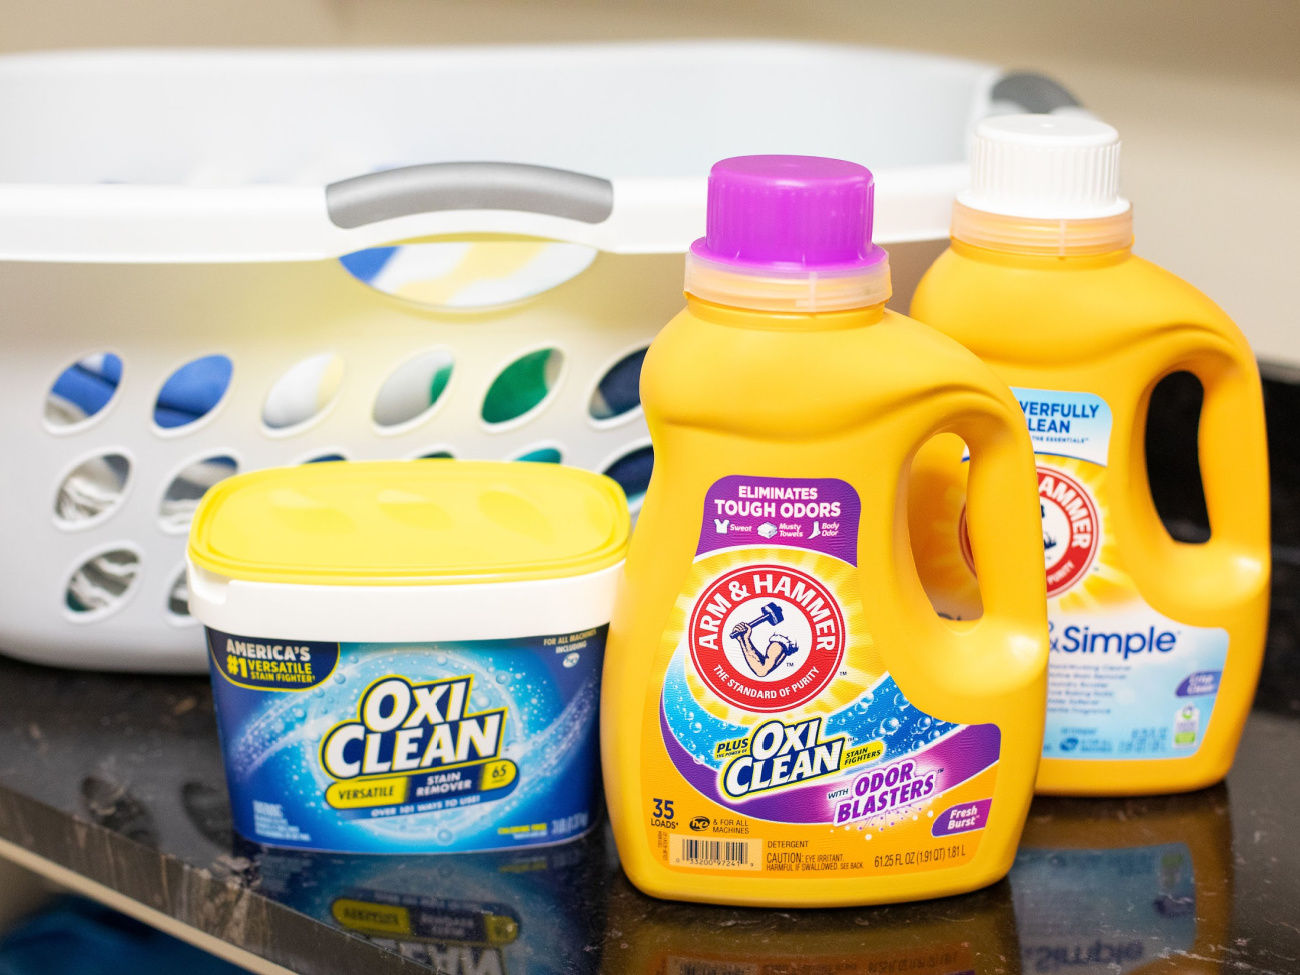 Rally To Win With ARM & HAMMER™ and OxiClean™ And Turn Your Publix Store Run Into A Home Run! on I Heart Publix